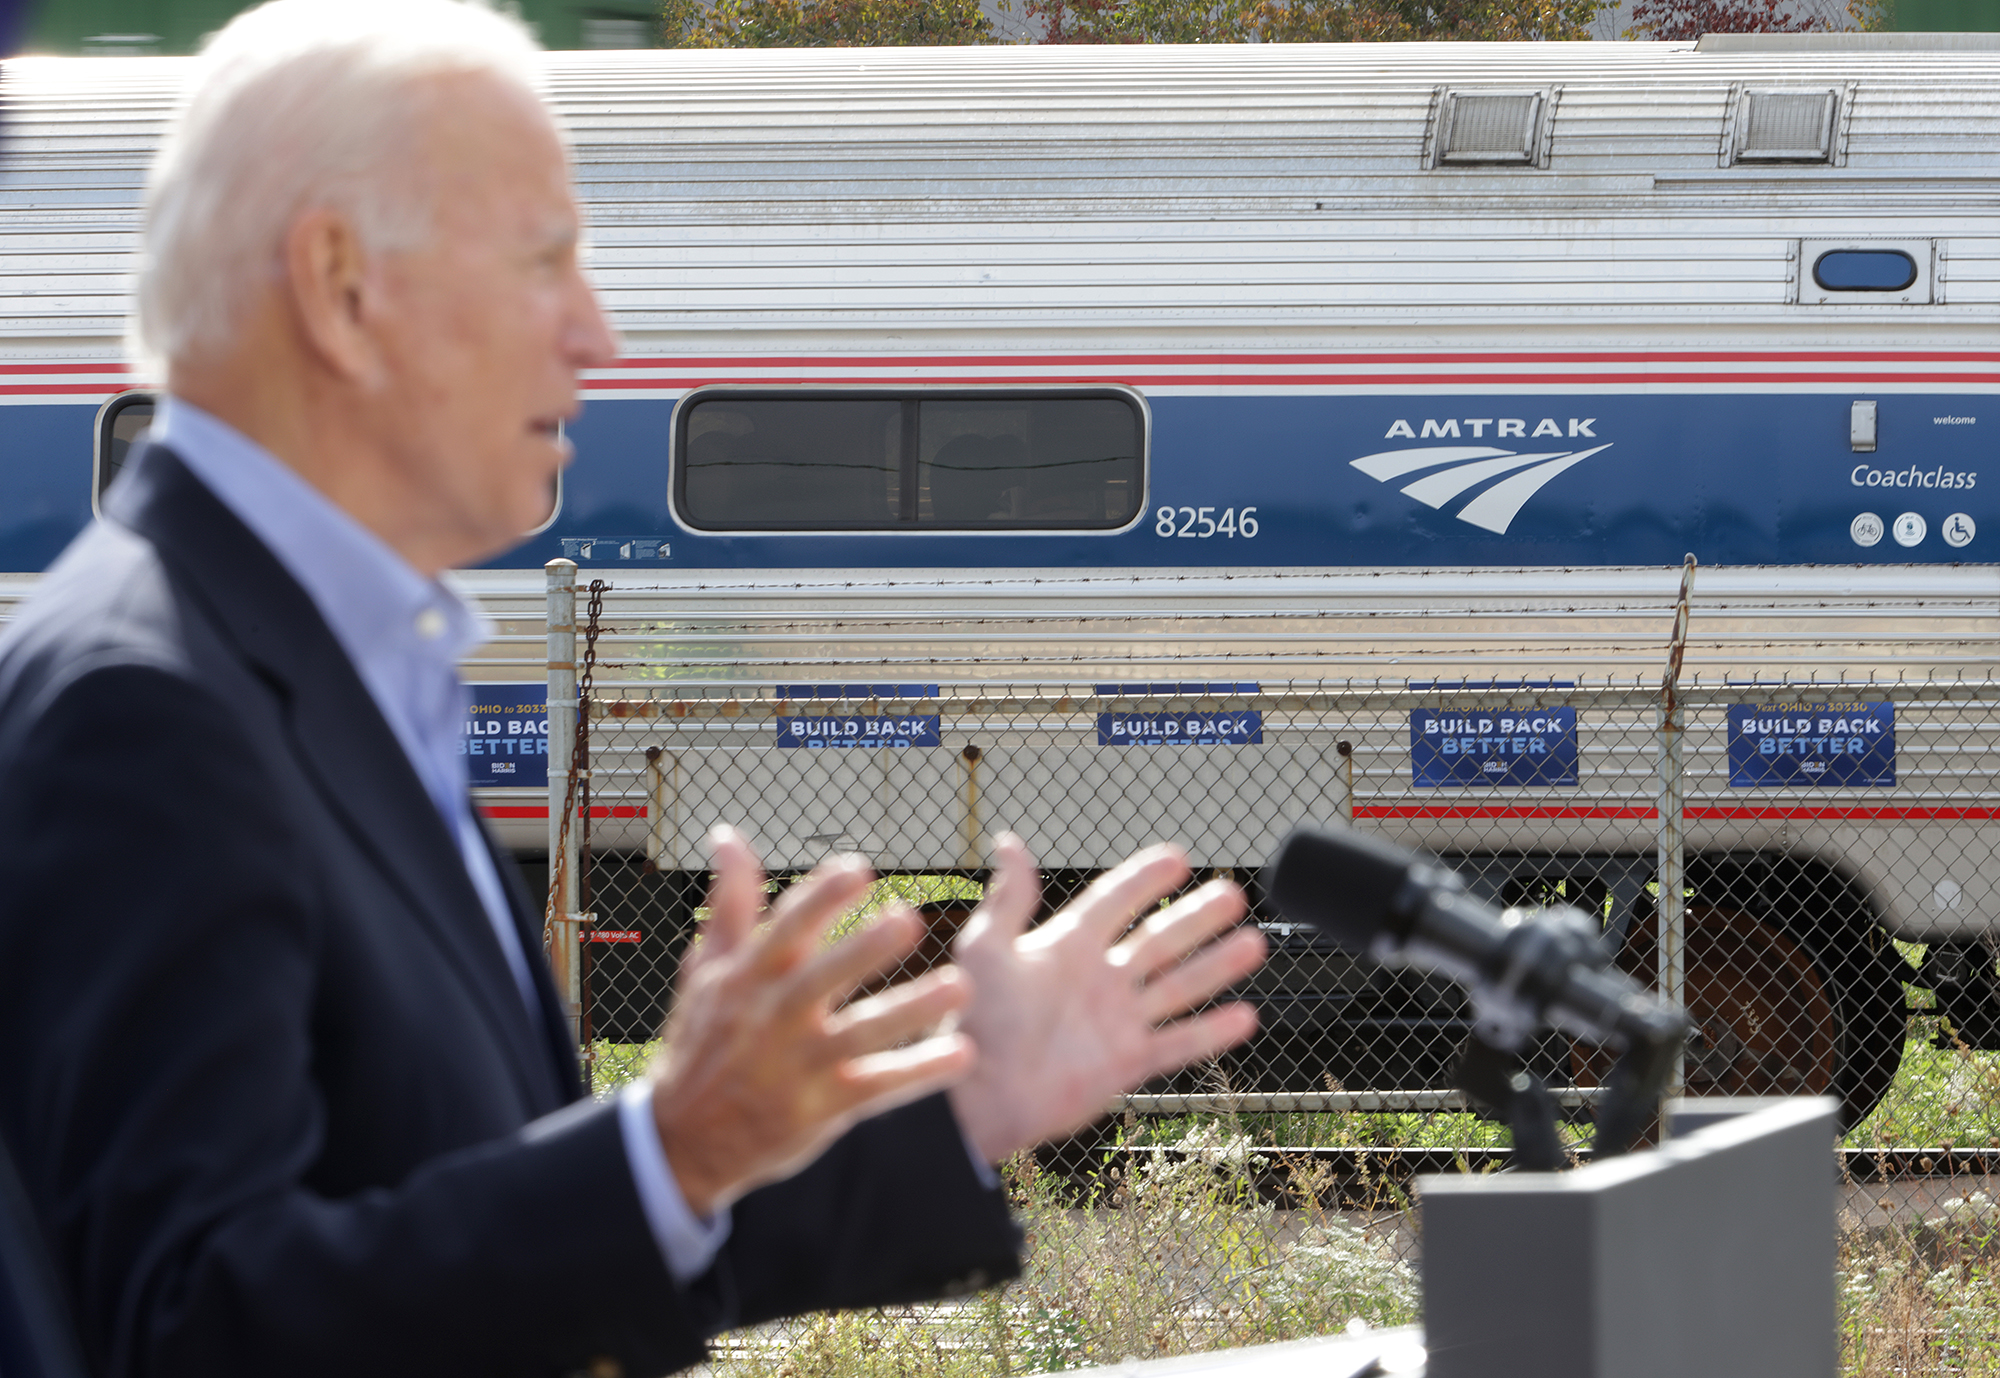 Bipartisan focus intensifies for crucial weeks ahead as path narrows on infrastructure